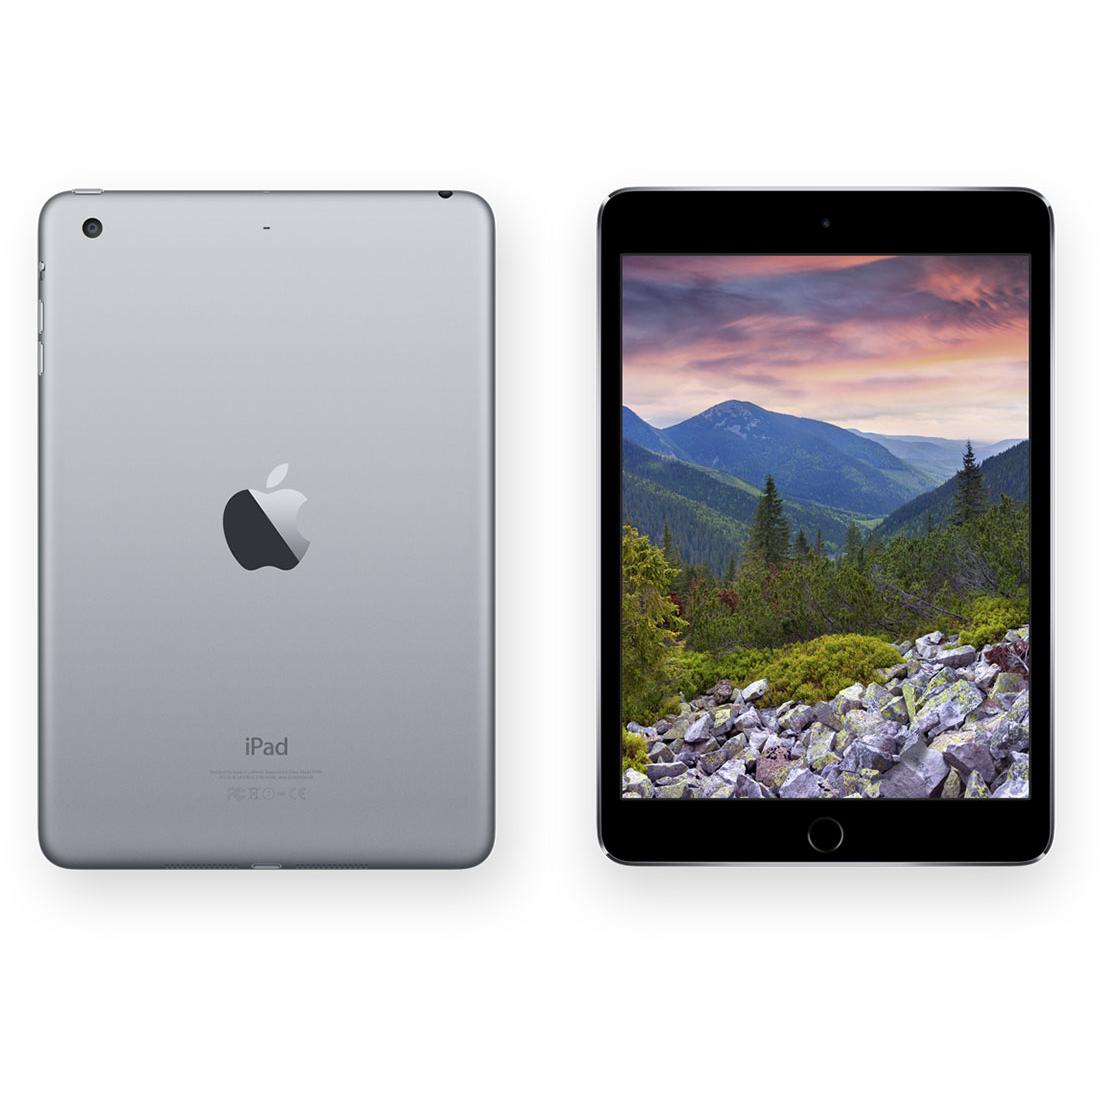 ipad mini 3 128 gb wlan spacegrau gebraucht back market. Black Bedroom Furniture Sets. Home Design Ideas